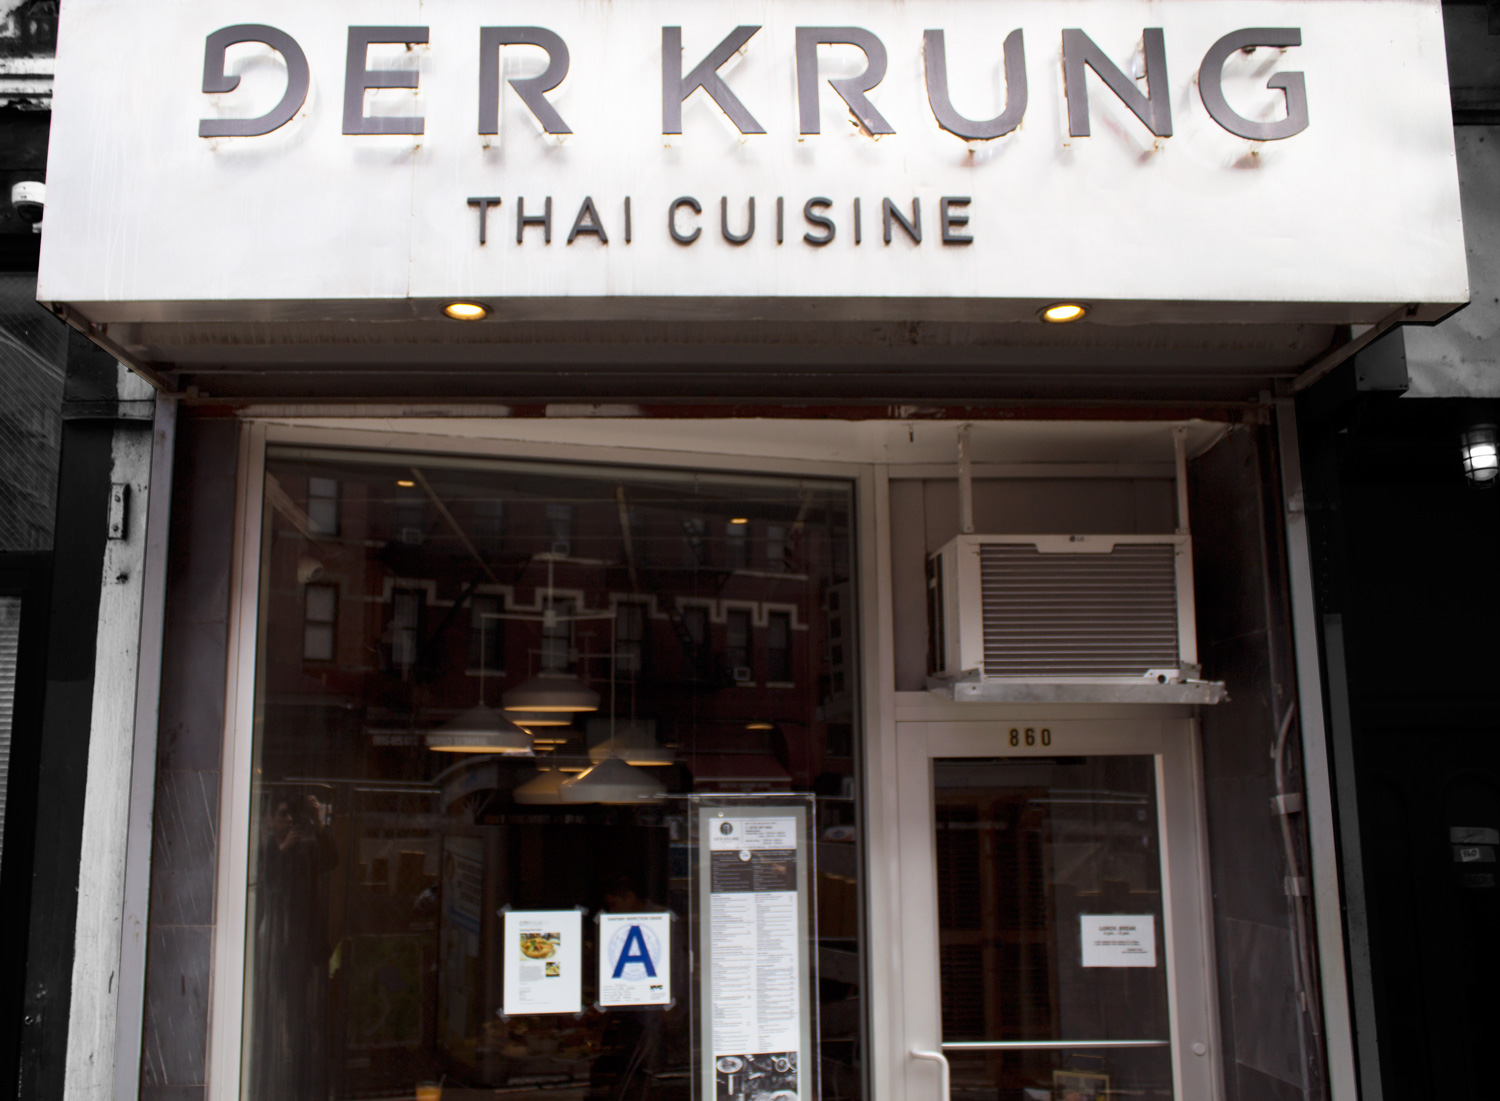 History - As known as the landmark of exotic Thai food, Der Krung aims to deliver the best Thai experience in the heart of New York City. Formed in 2013, Der Krung continues to bring forth its expertise and traditional roots of Thailand into their food dishes.